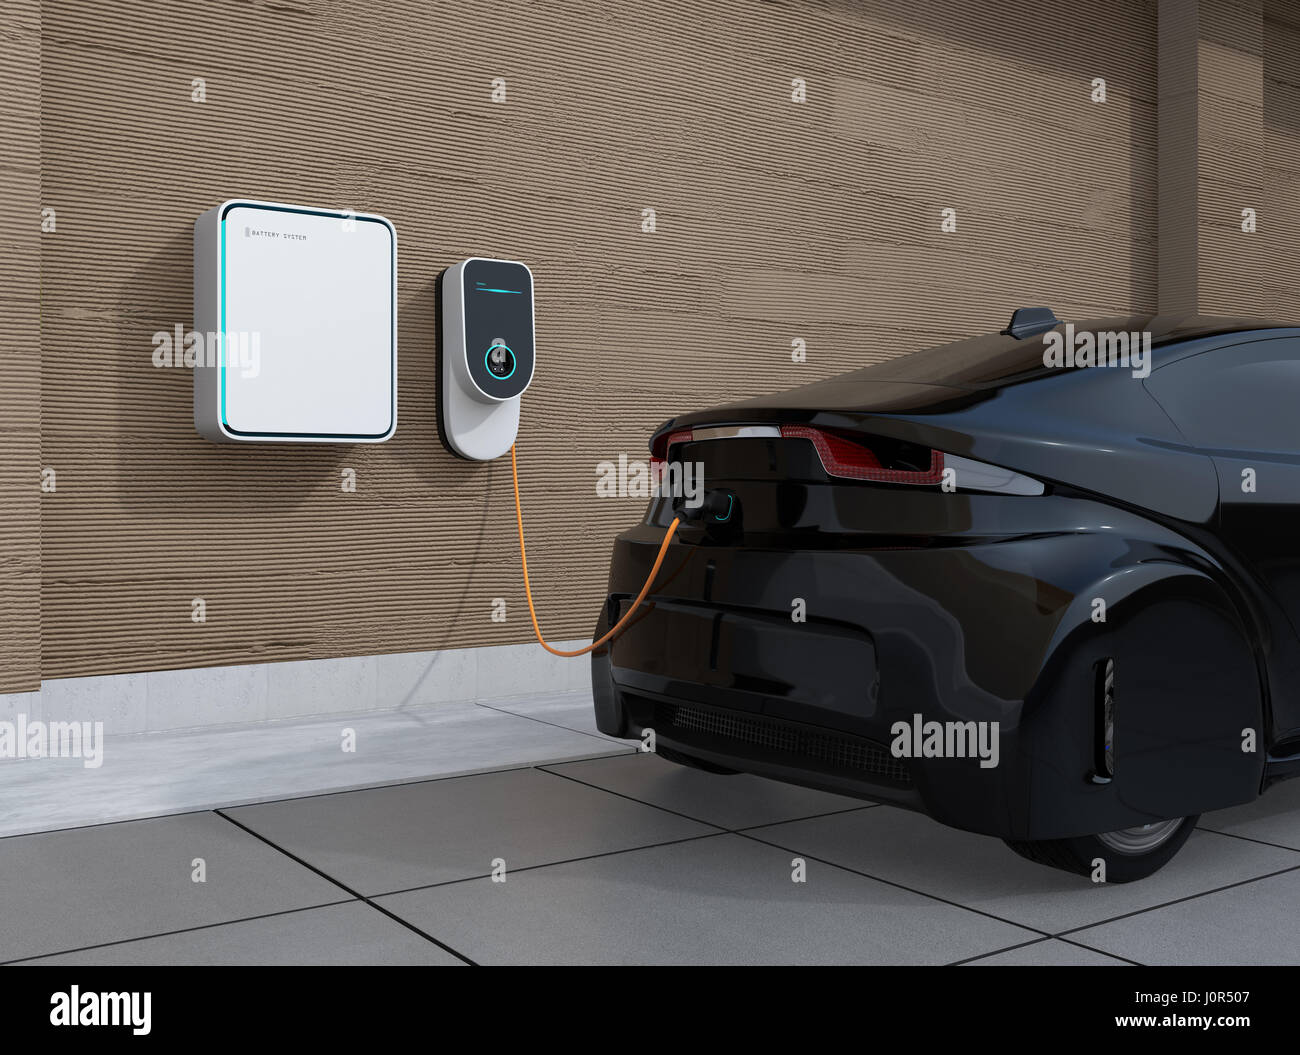 Electric Vehicle Charging Station For Home 3d Rendering Image Stock Photo Alamy,Cheap Diy Halloween Decorations Scary